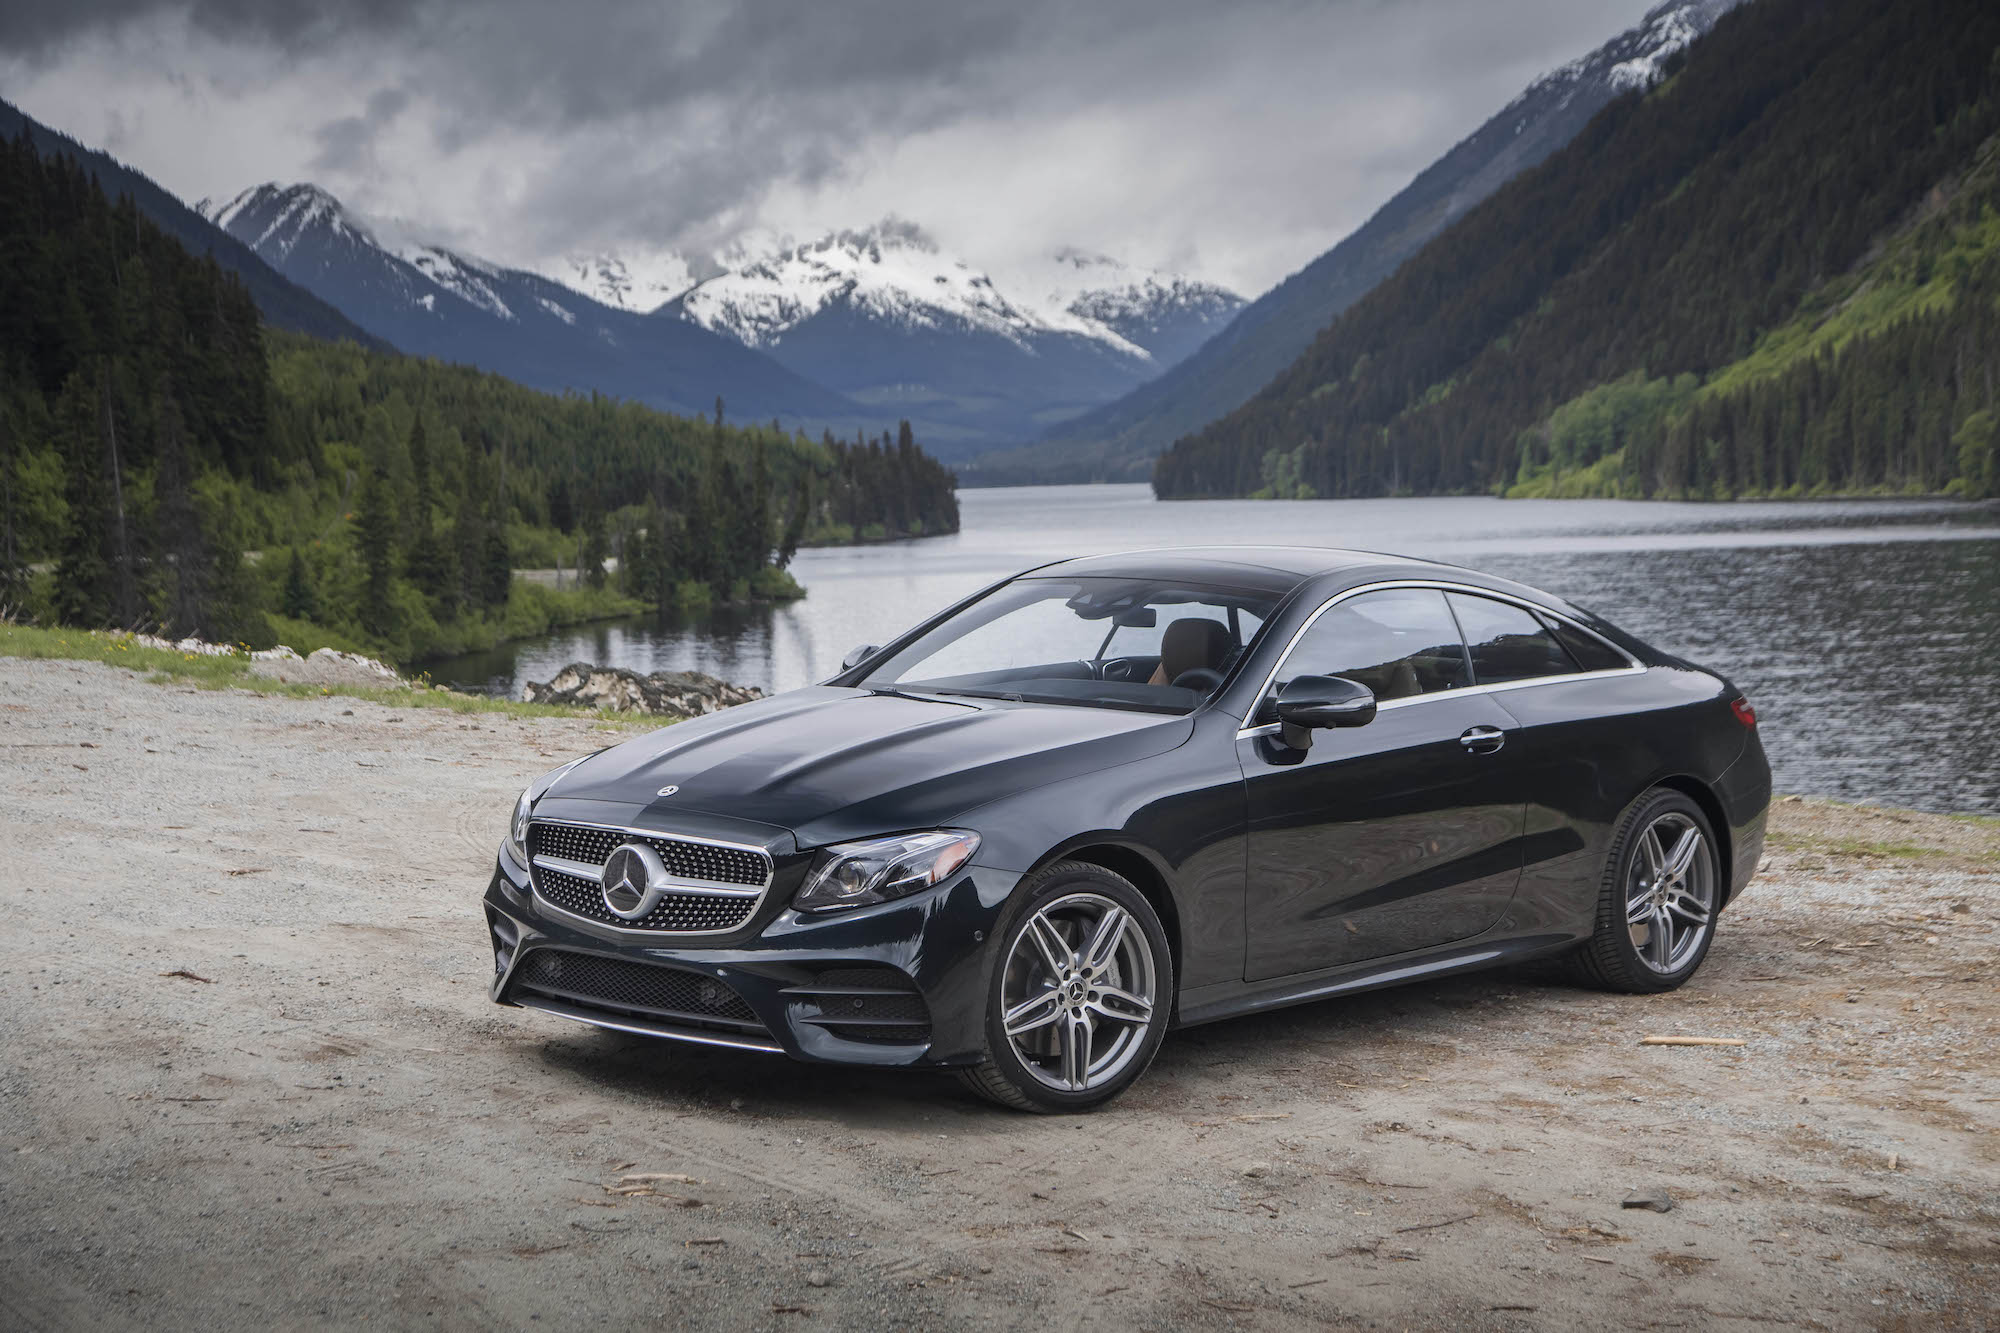 First Drive: 2018 Mercedes-Benz E 400 4MATIC Coupe   Canadian Auto Review